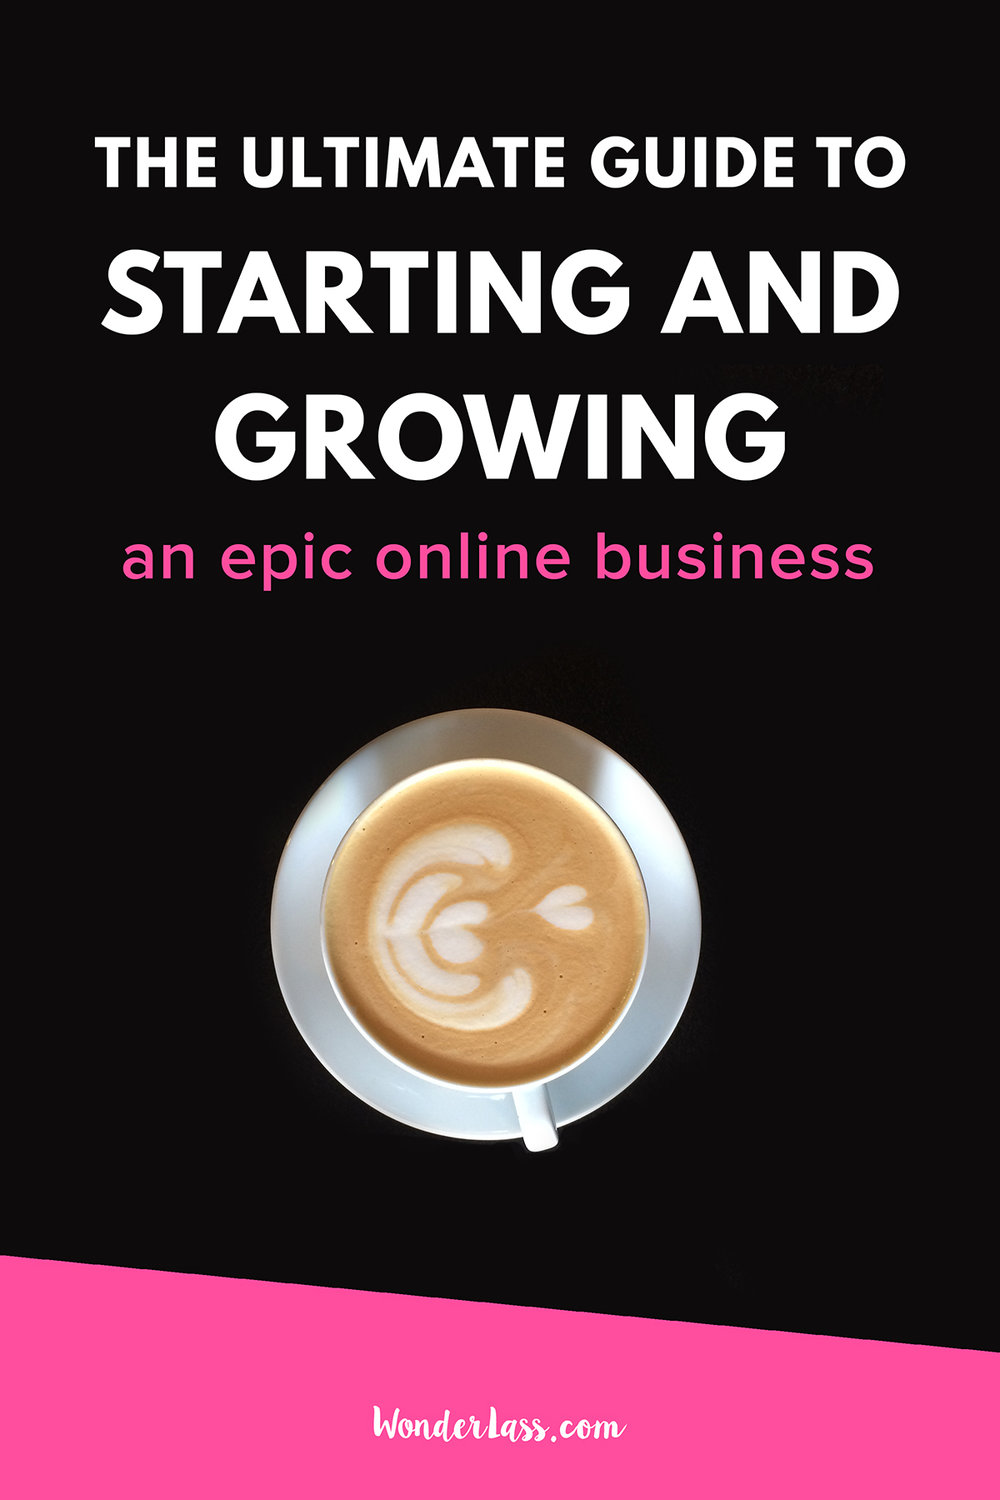 The Ultimate Guide to Starting and Growing an Epic Online Business | how to start and grow a profitable online business